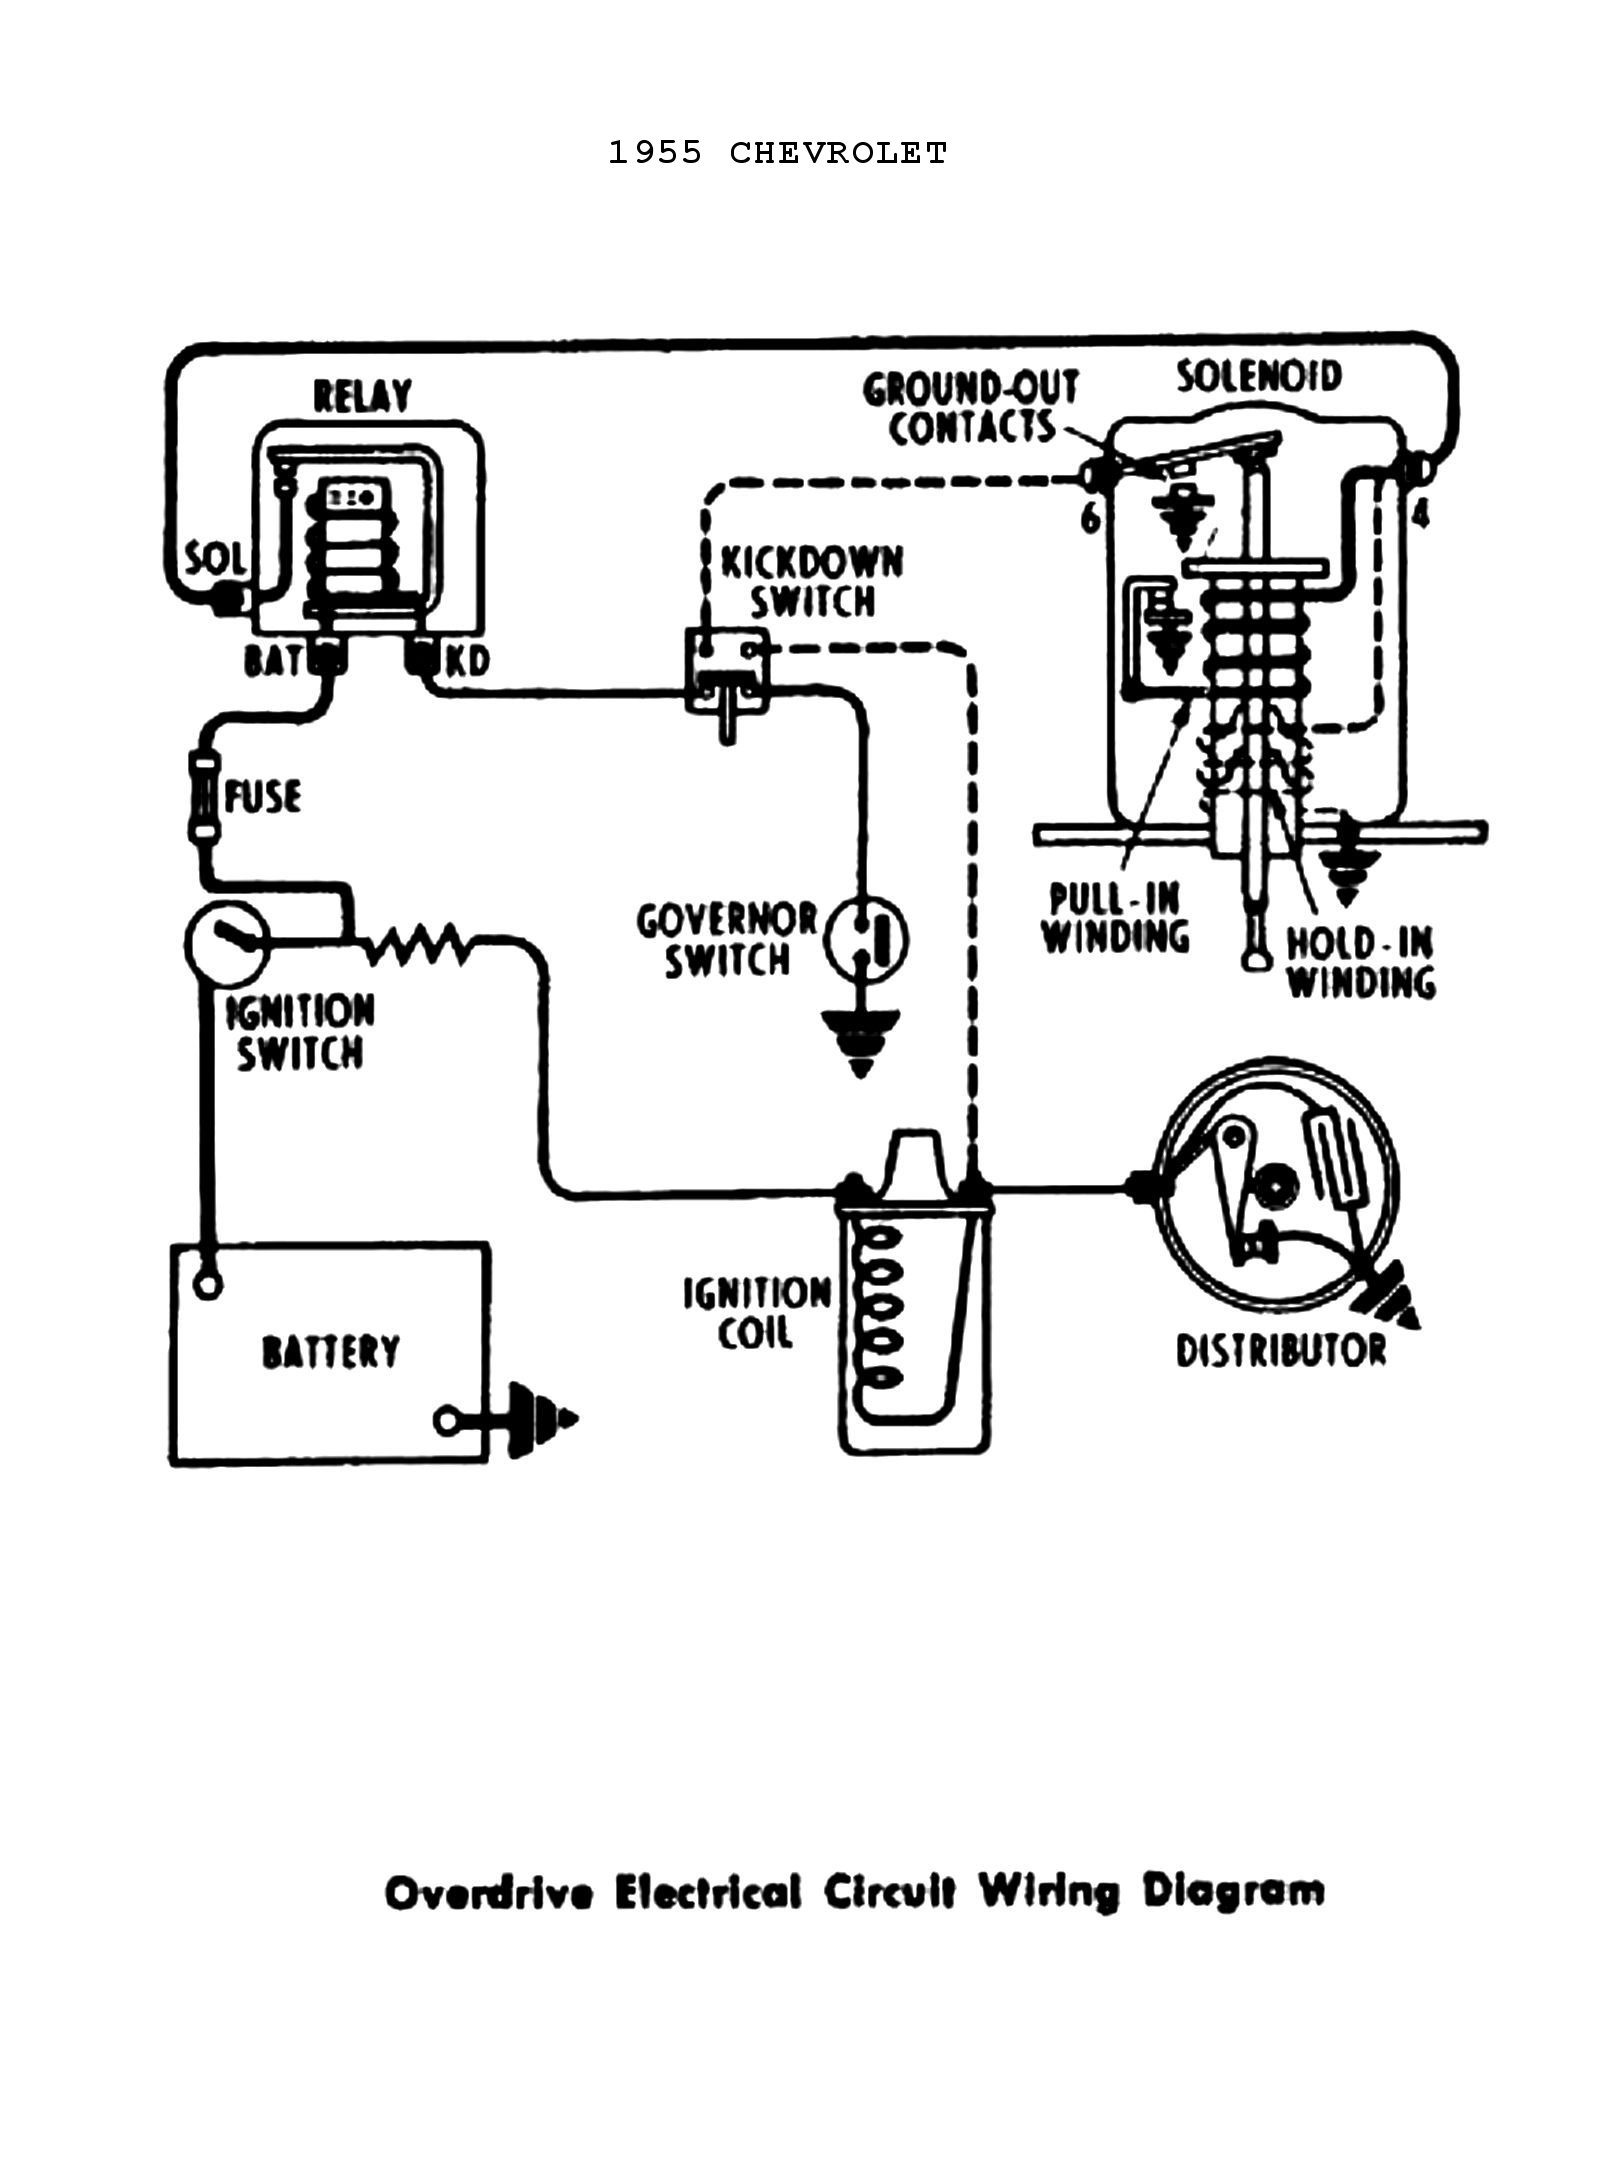 55odtrans1 chevy wiring diagrams Basic Engine Wiring Diagram Chevy at suagrazia.org